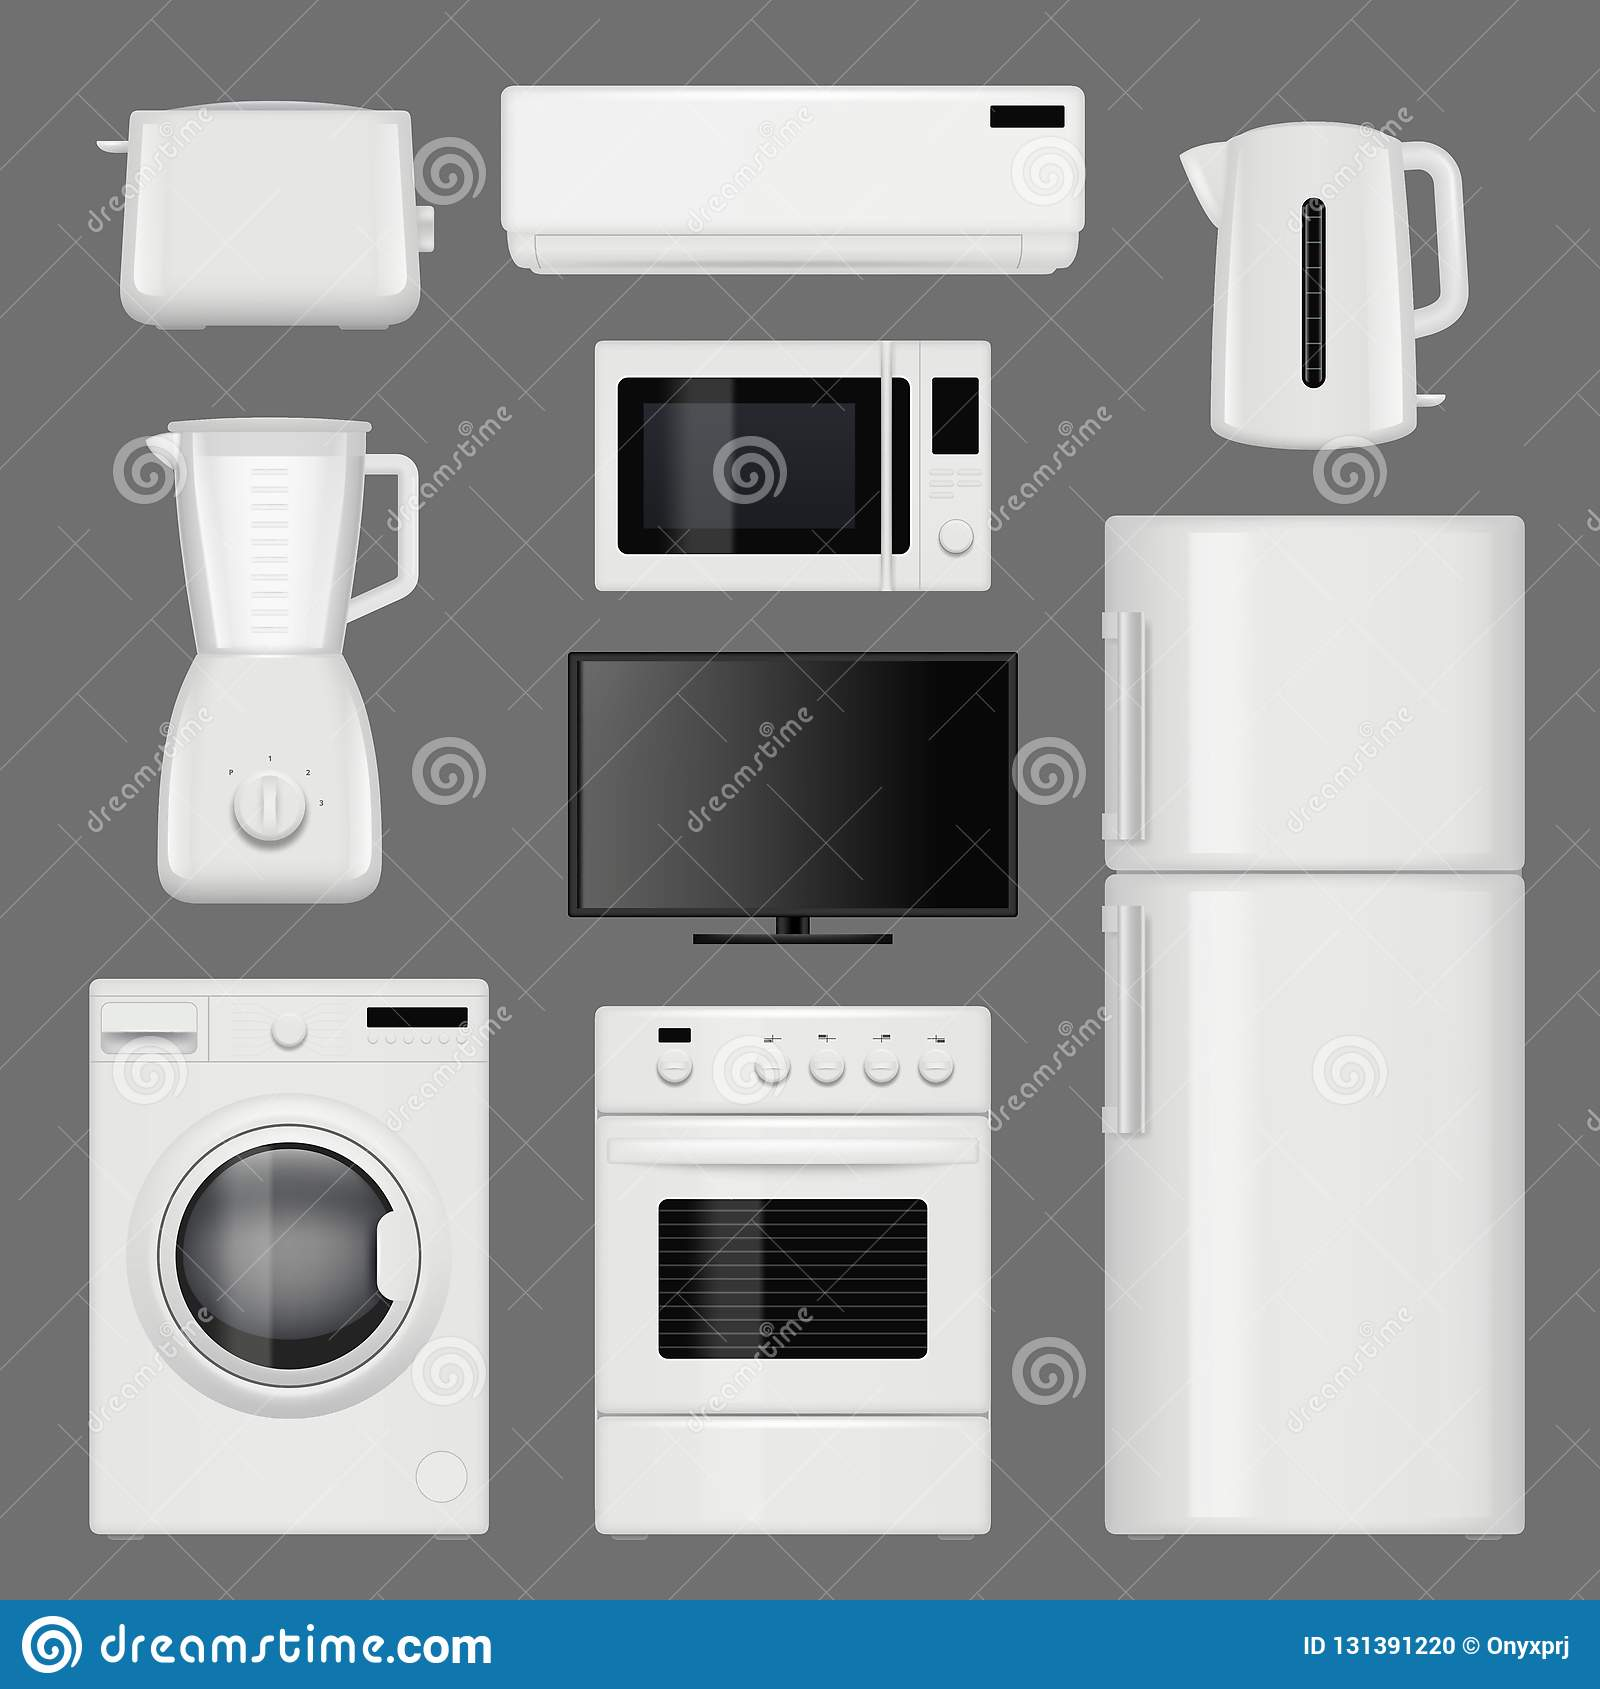 Home Appliances Realistic. Modern Stainless Steel Kitchen Tools